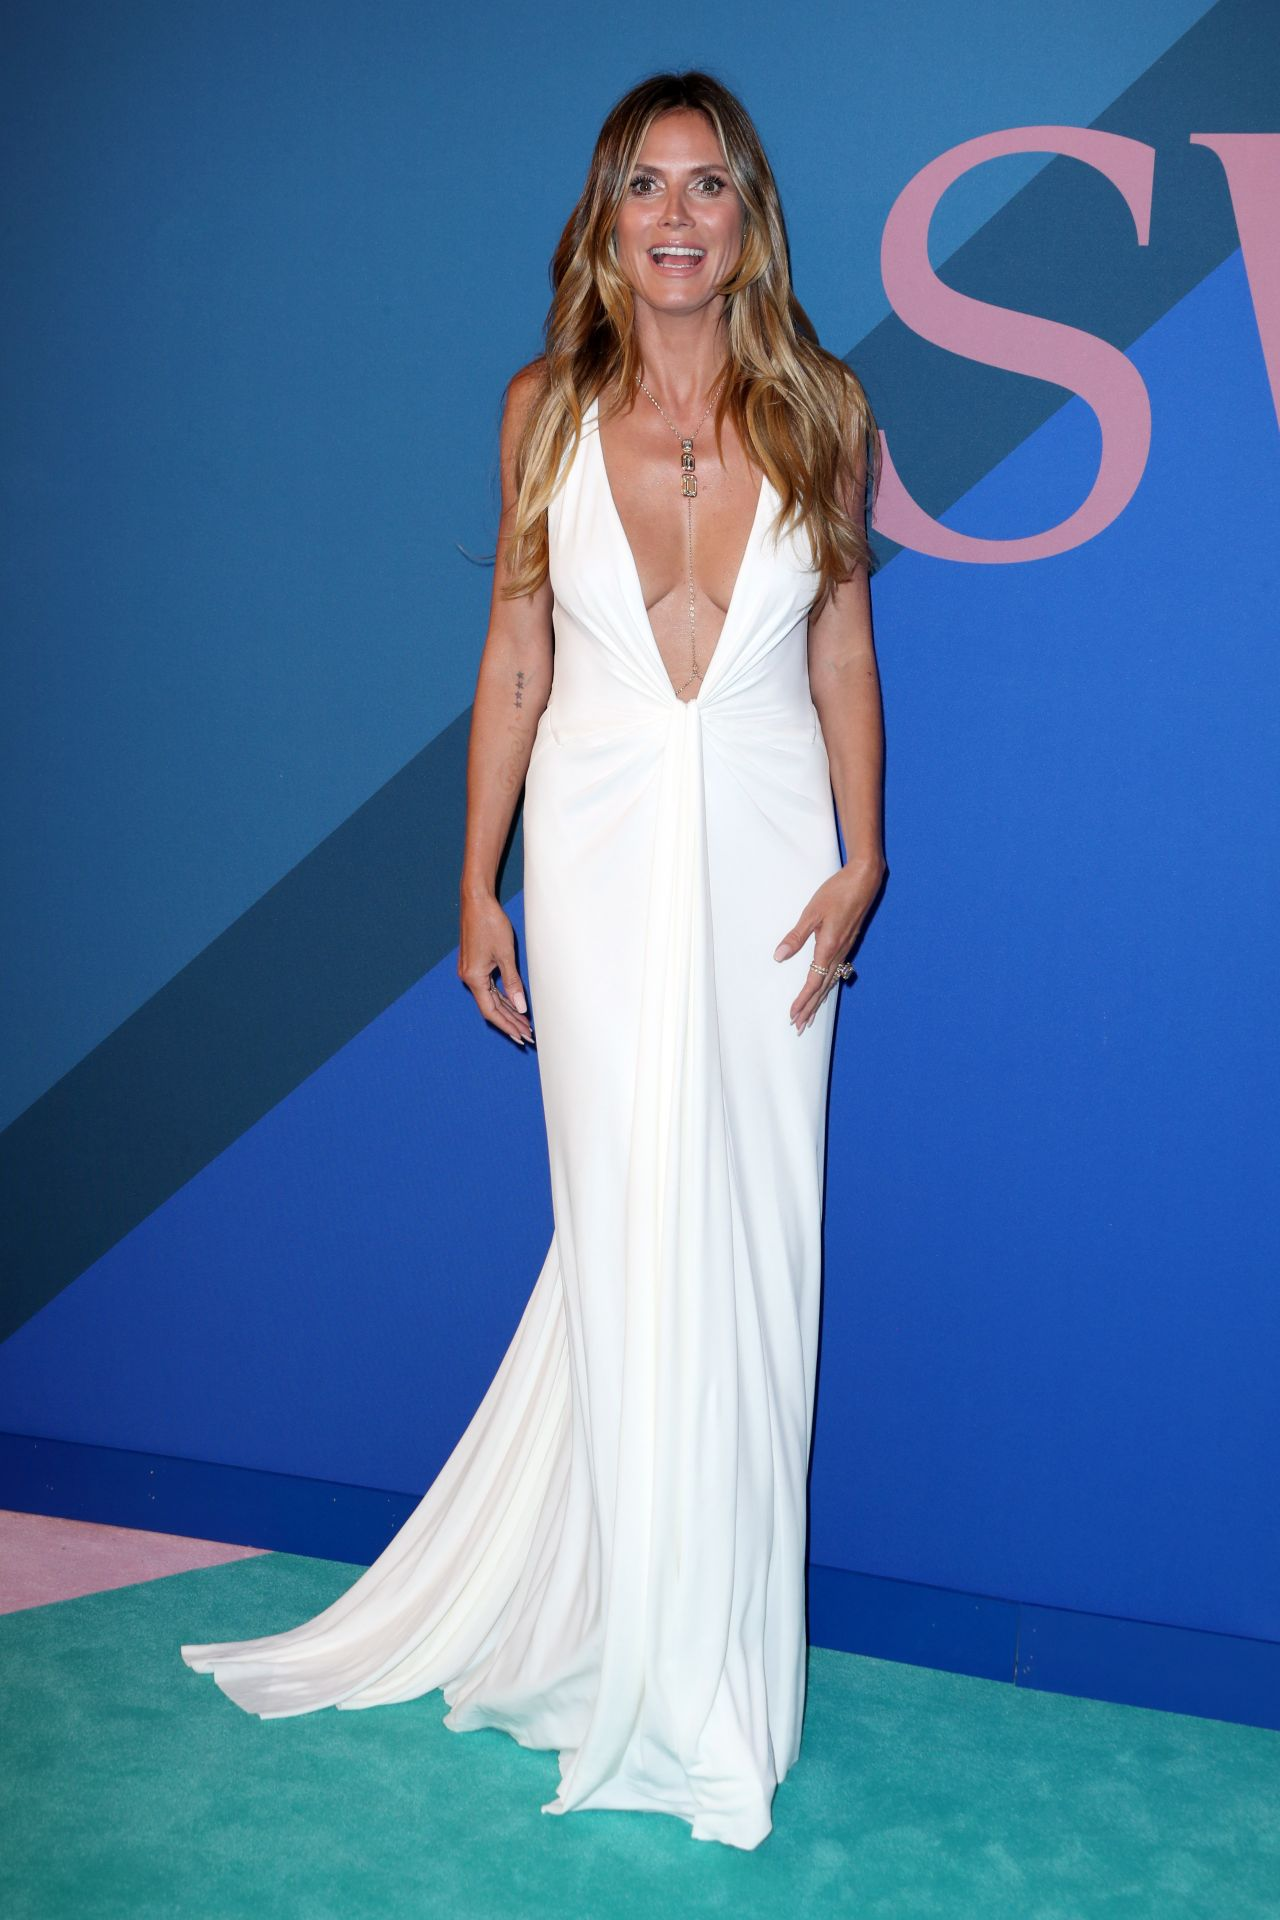 heidi klum on red carpet cfda fashion awards in new york 06 05 2017. Black Bedroom Furniture Sets. Home Design Ideas